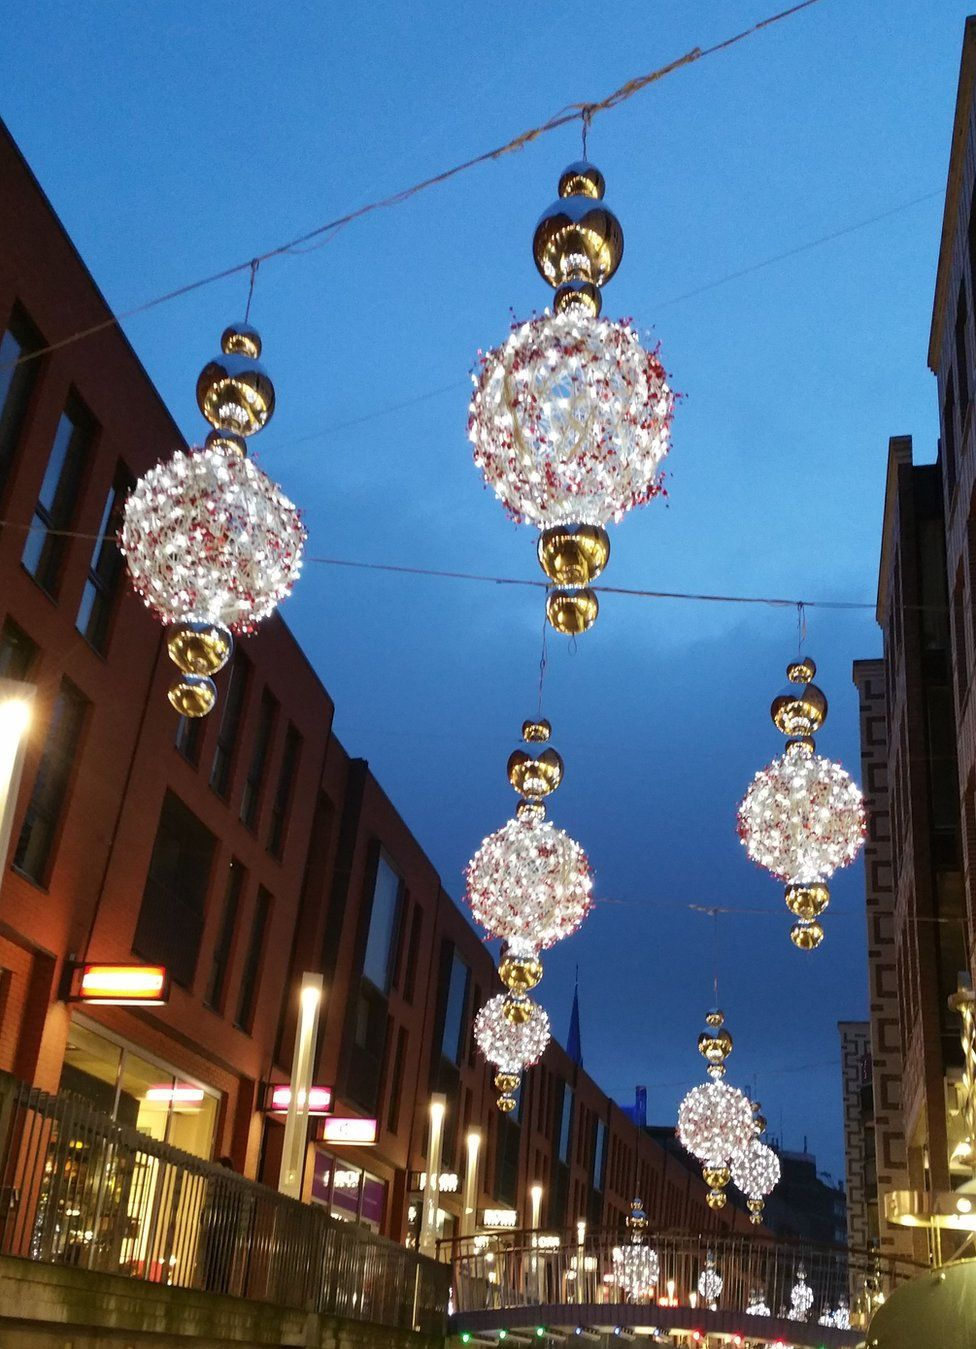 Christmas decorations in the street